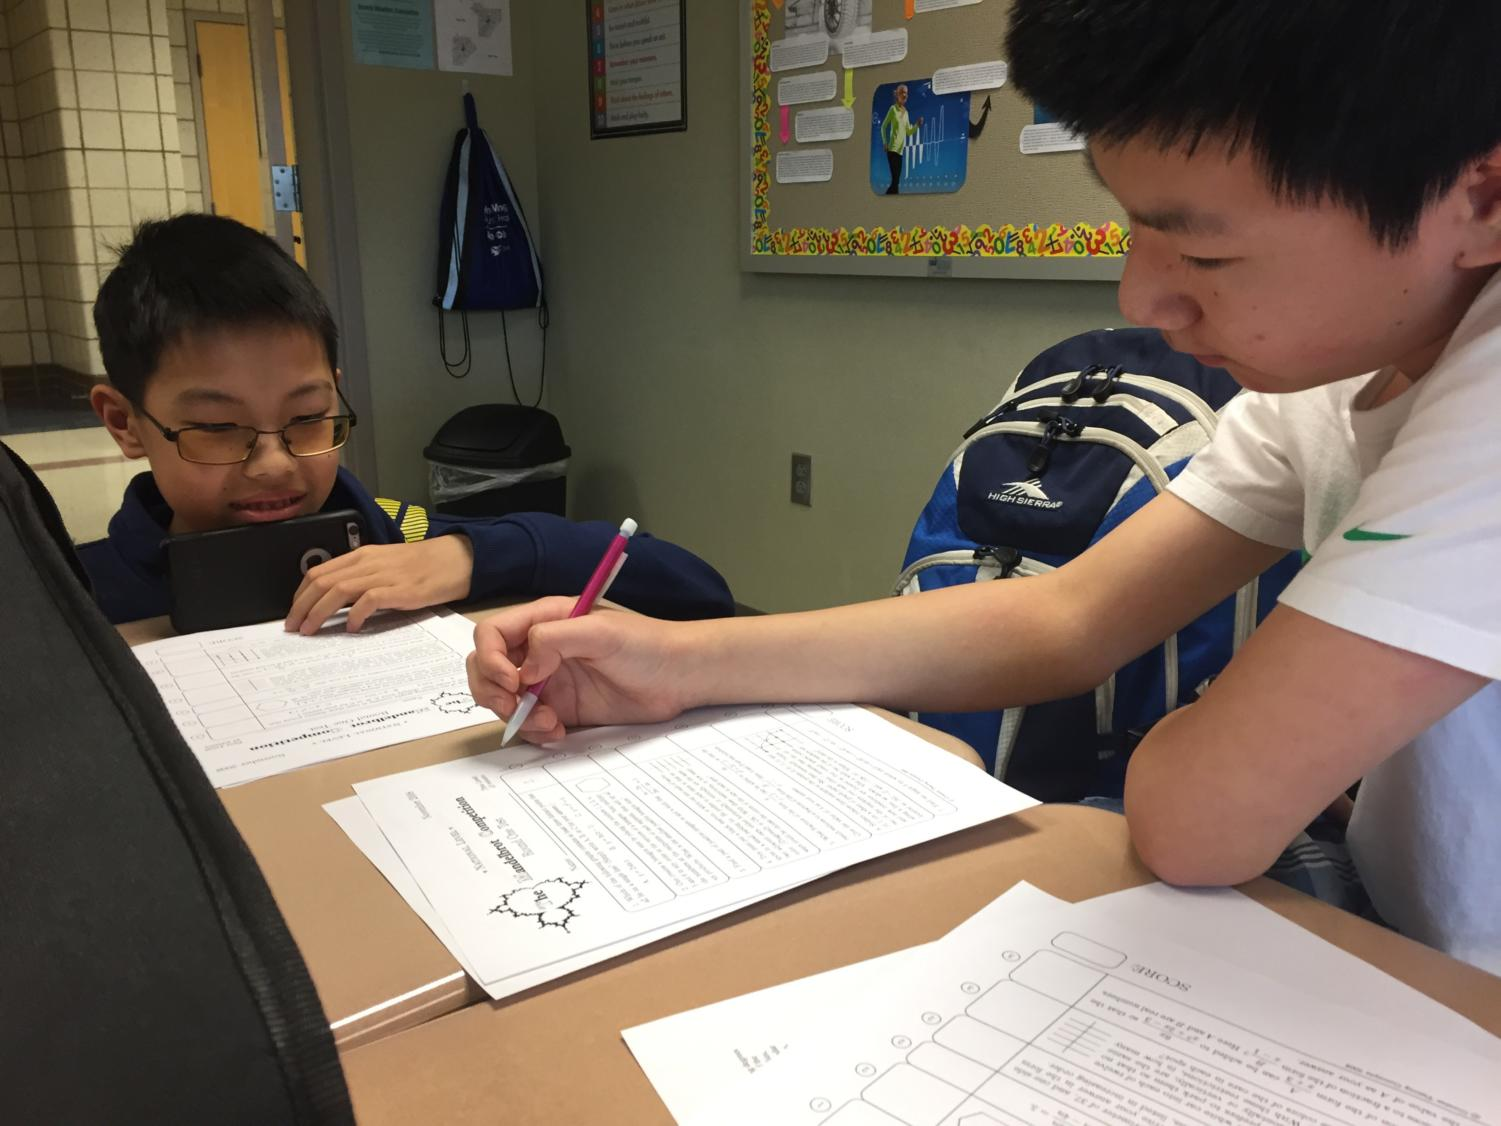 Math Club member and freshman Jacob Zhang works alongside fellow Math Club member and freshman Jack Liu on the first round of the Mandelbrot competition. The Mandelbrot took place on Oct. 2 in H207.